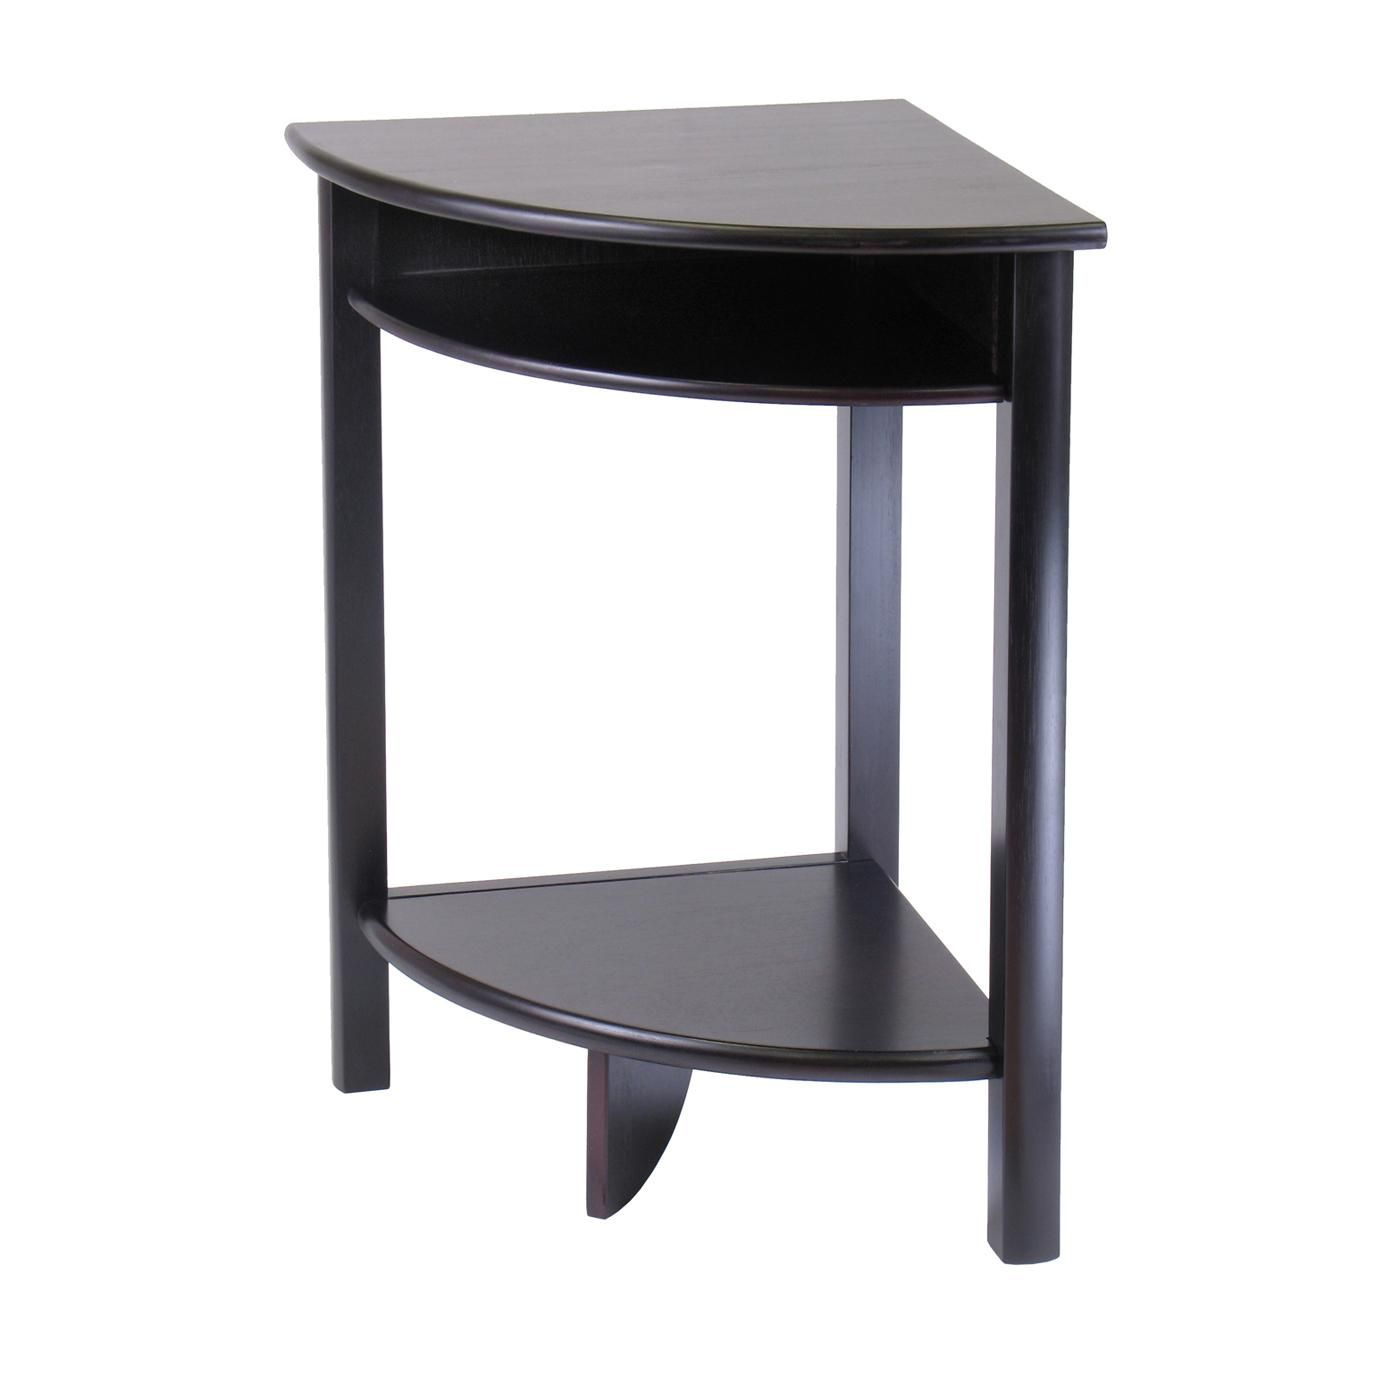 awsemone mini corner accent table for dining room with curve leick design adjustable height pottery barn sofa lucite furniture home goods chairs skinny wine rack hampton bay